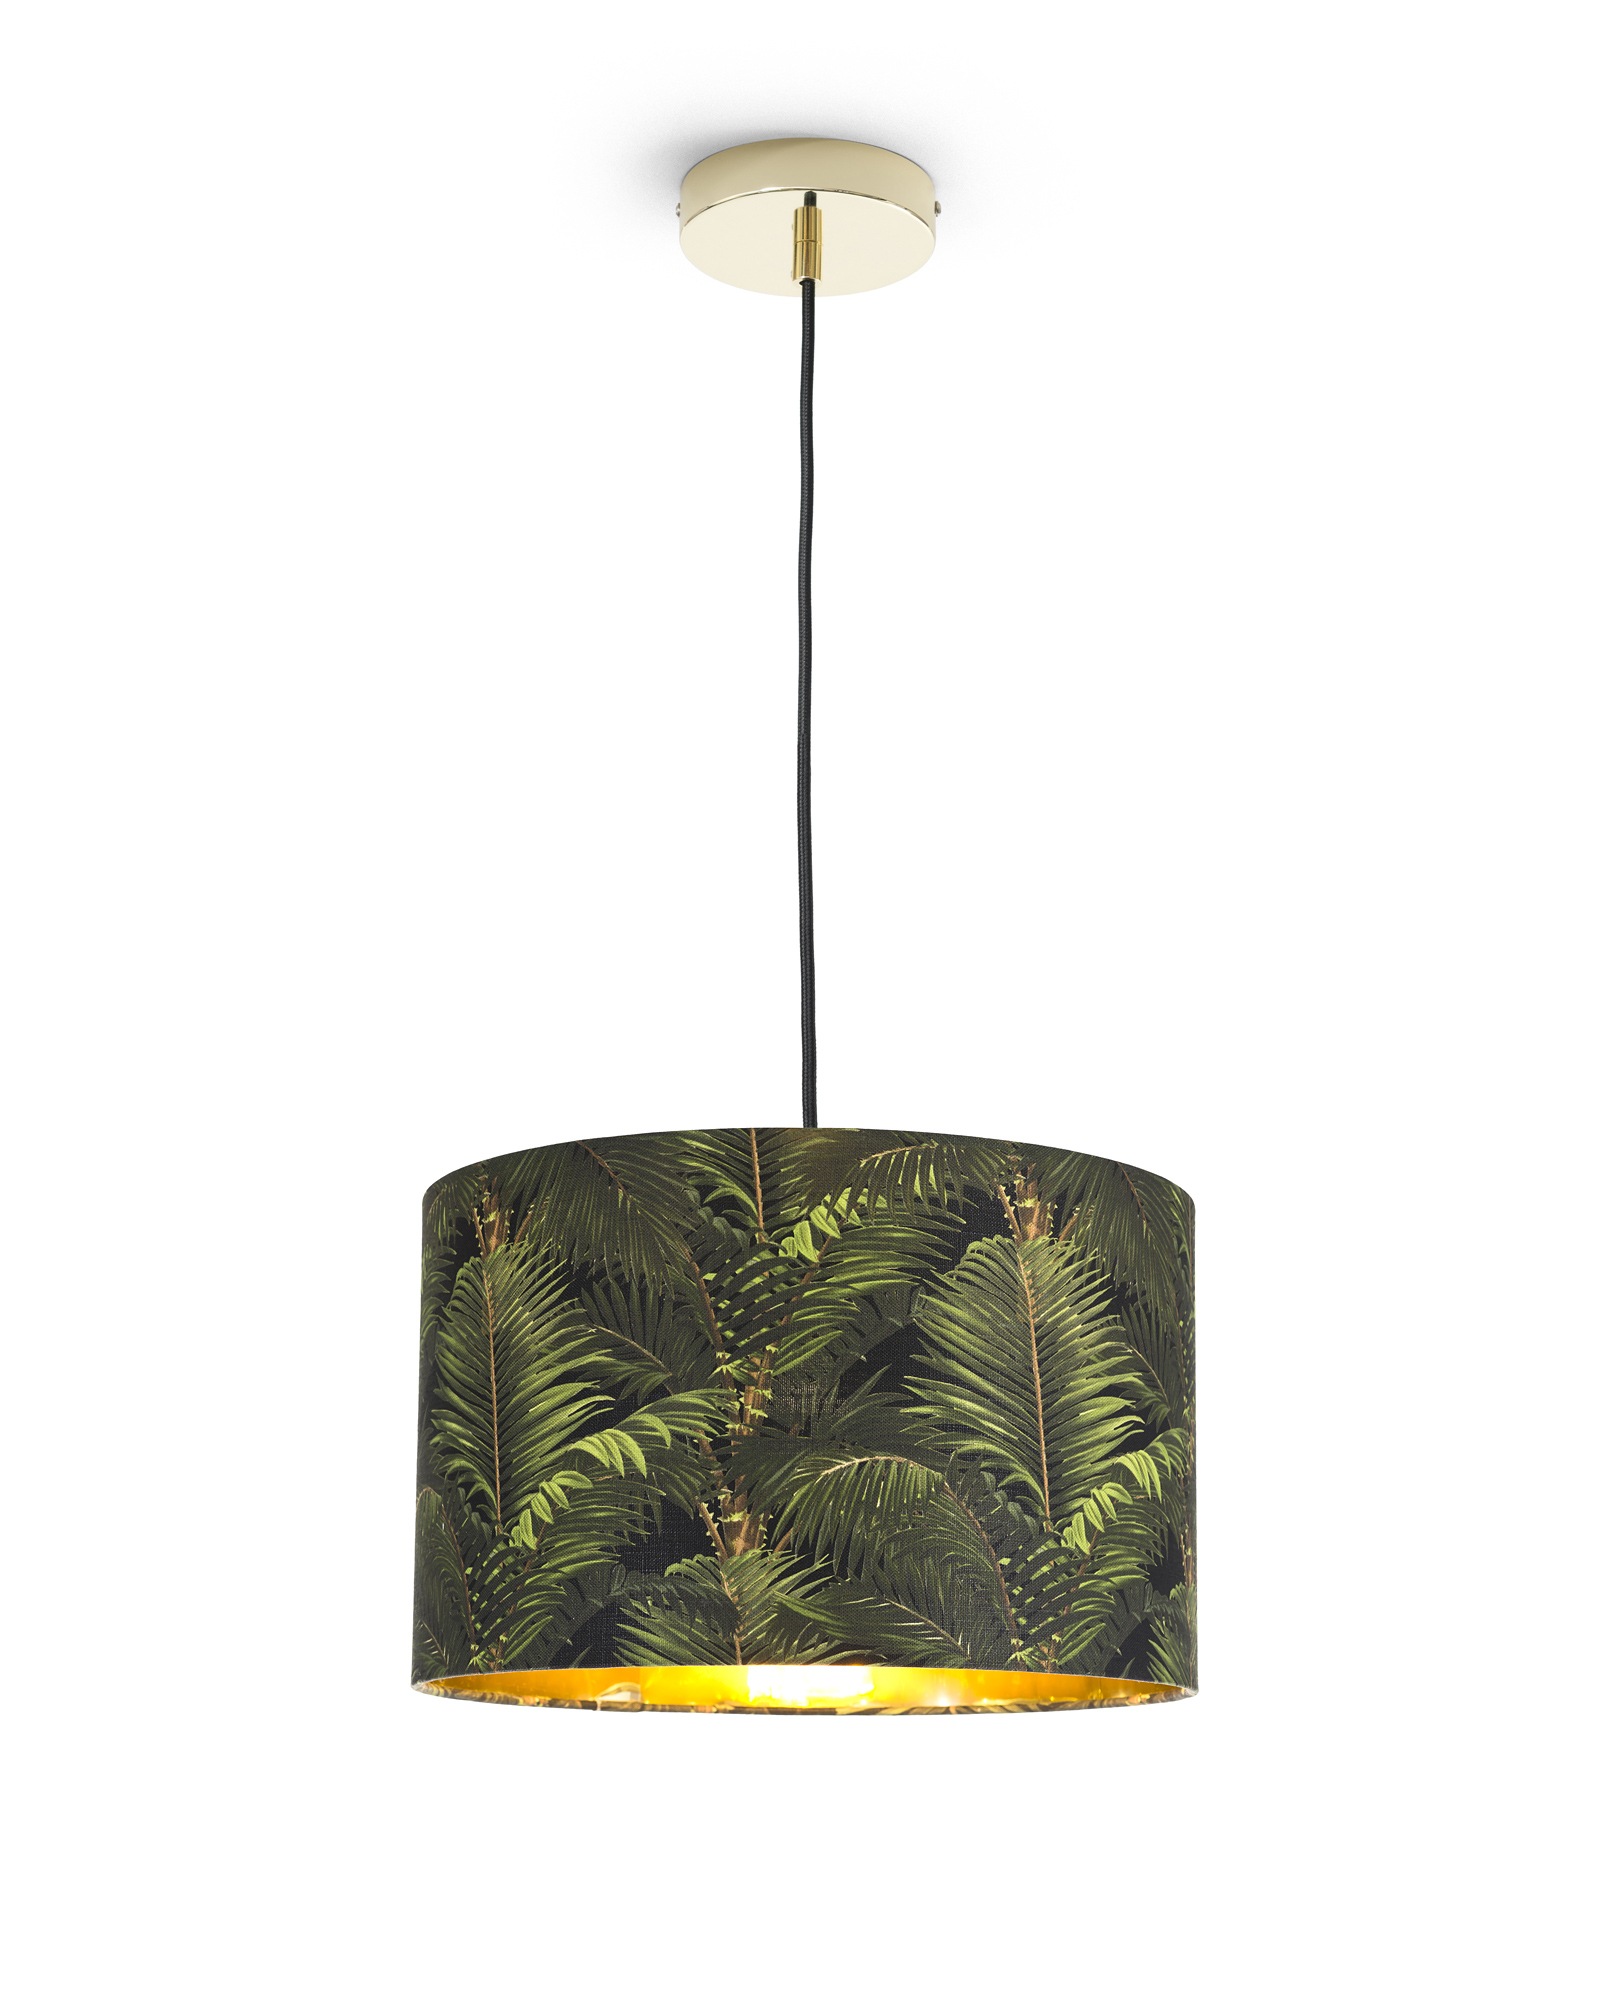 JARDIN TROPICAL Pendant Light 55cm x 30cm